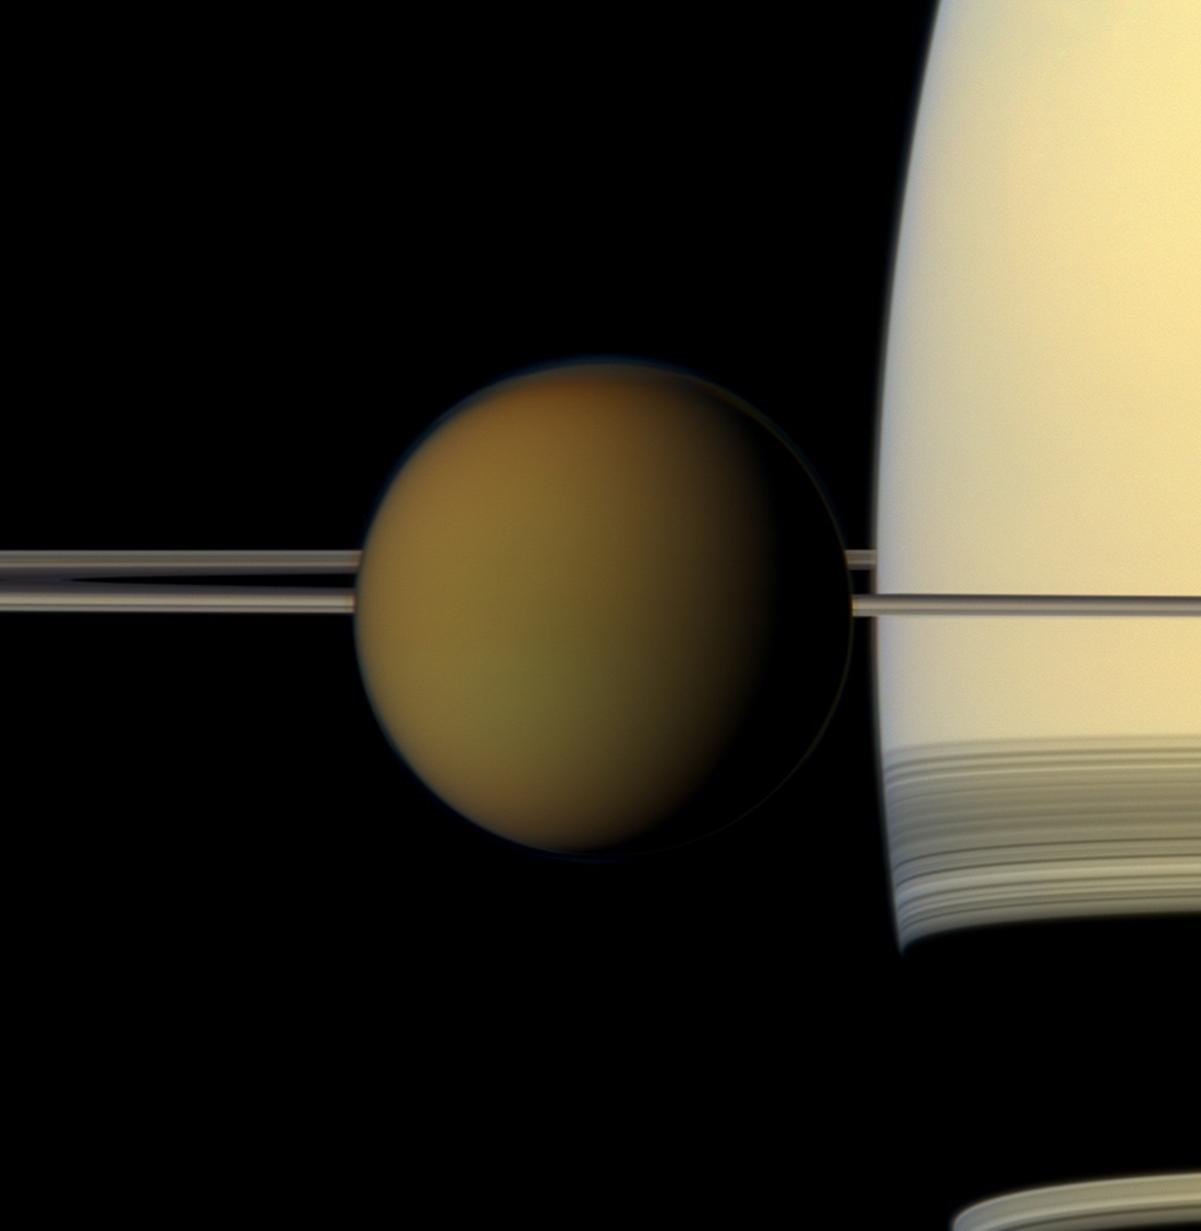 titan-saturn-rings-cassini-holiday-treats-12-22-2011